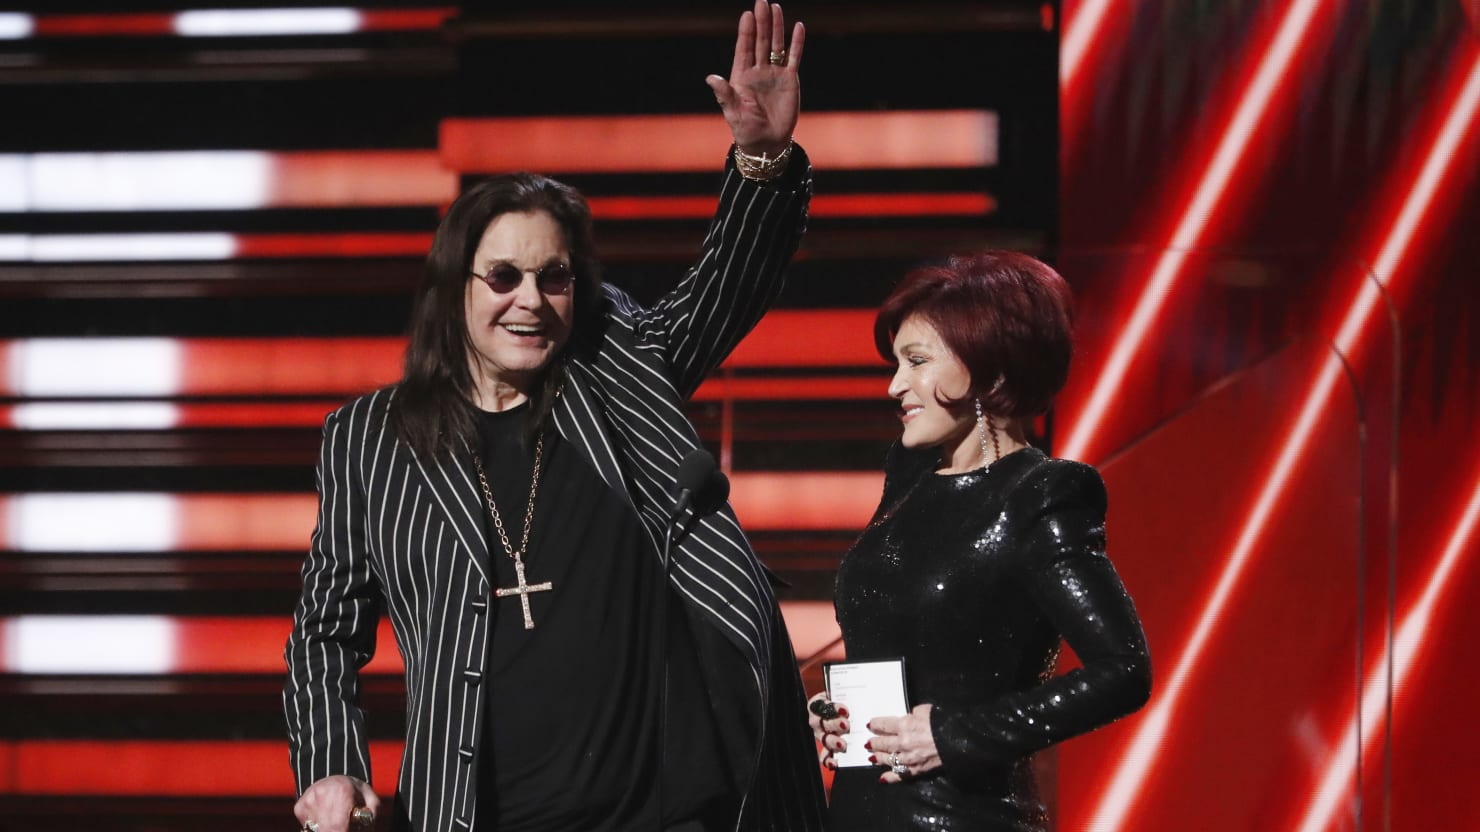 Ozzy Osbourne Pulls North American Tour to Have Parkinson's Treatment